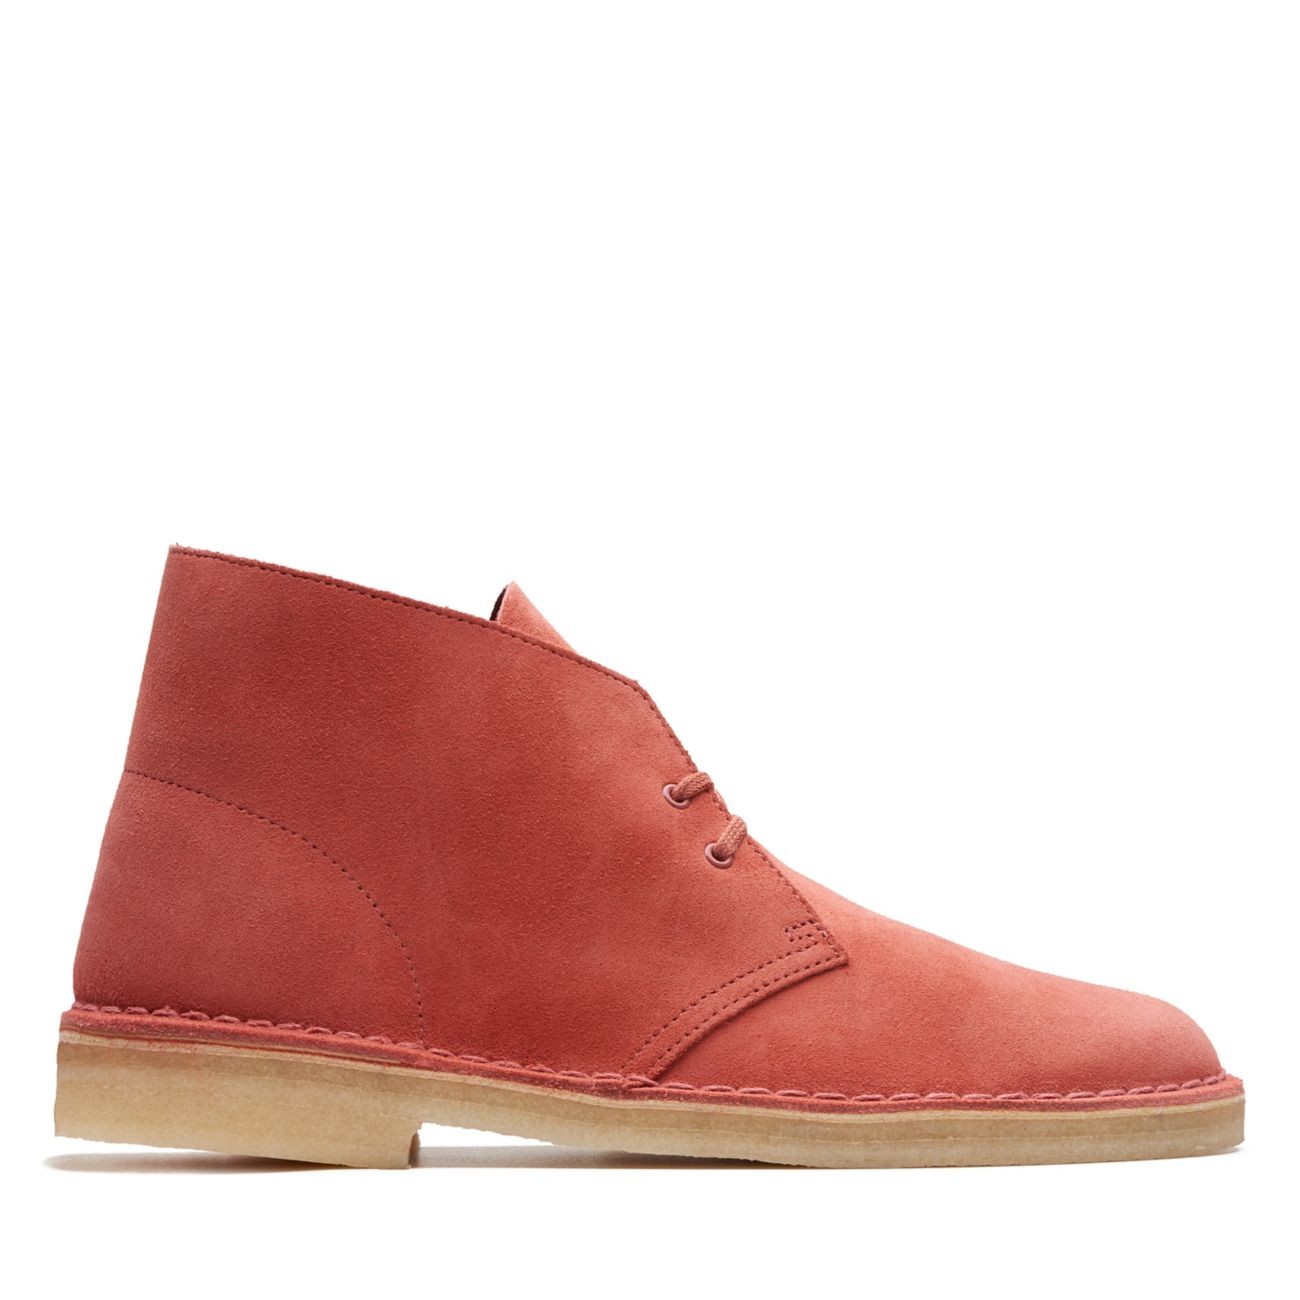 5aa749a31 Desert Boot Clay - Mens Originals - Clarks® Shoes Official Site | Clarks